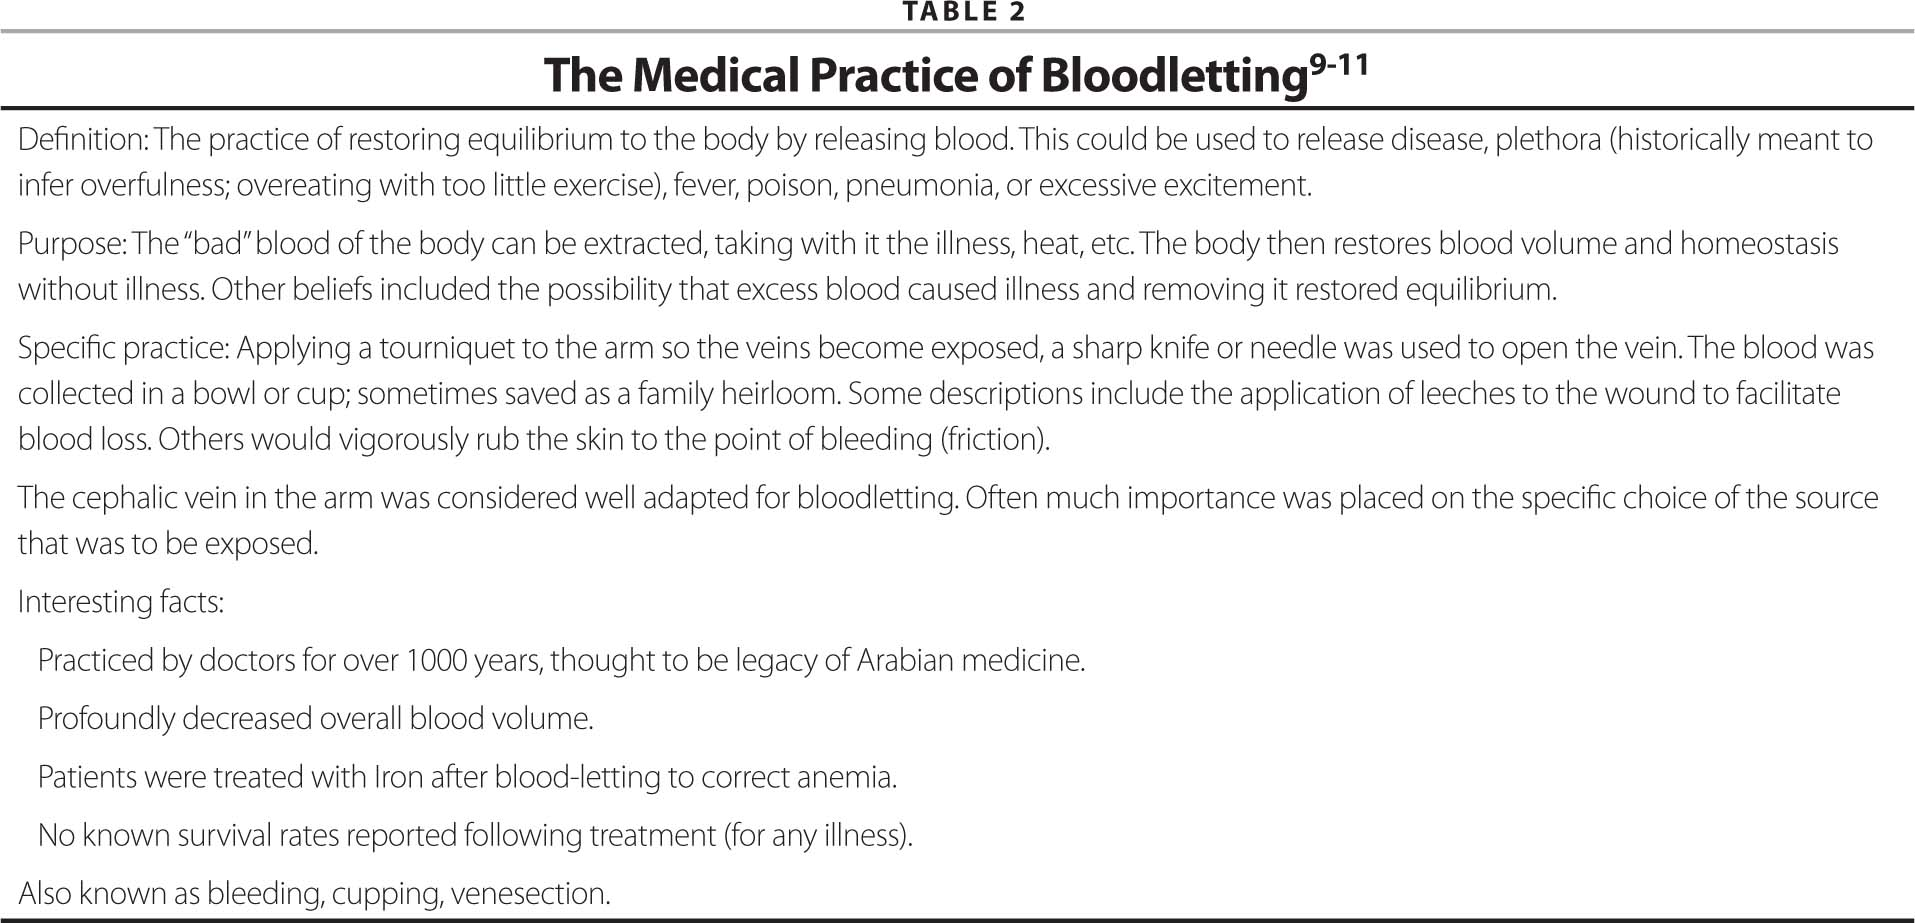 The Medical Practice of Bloodletting9–11